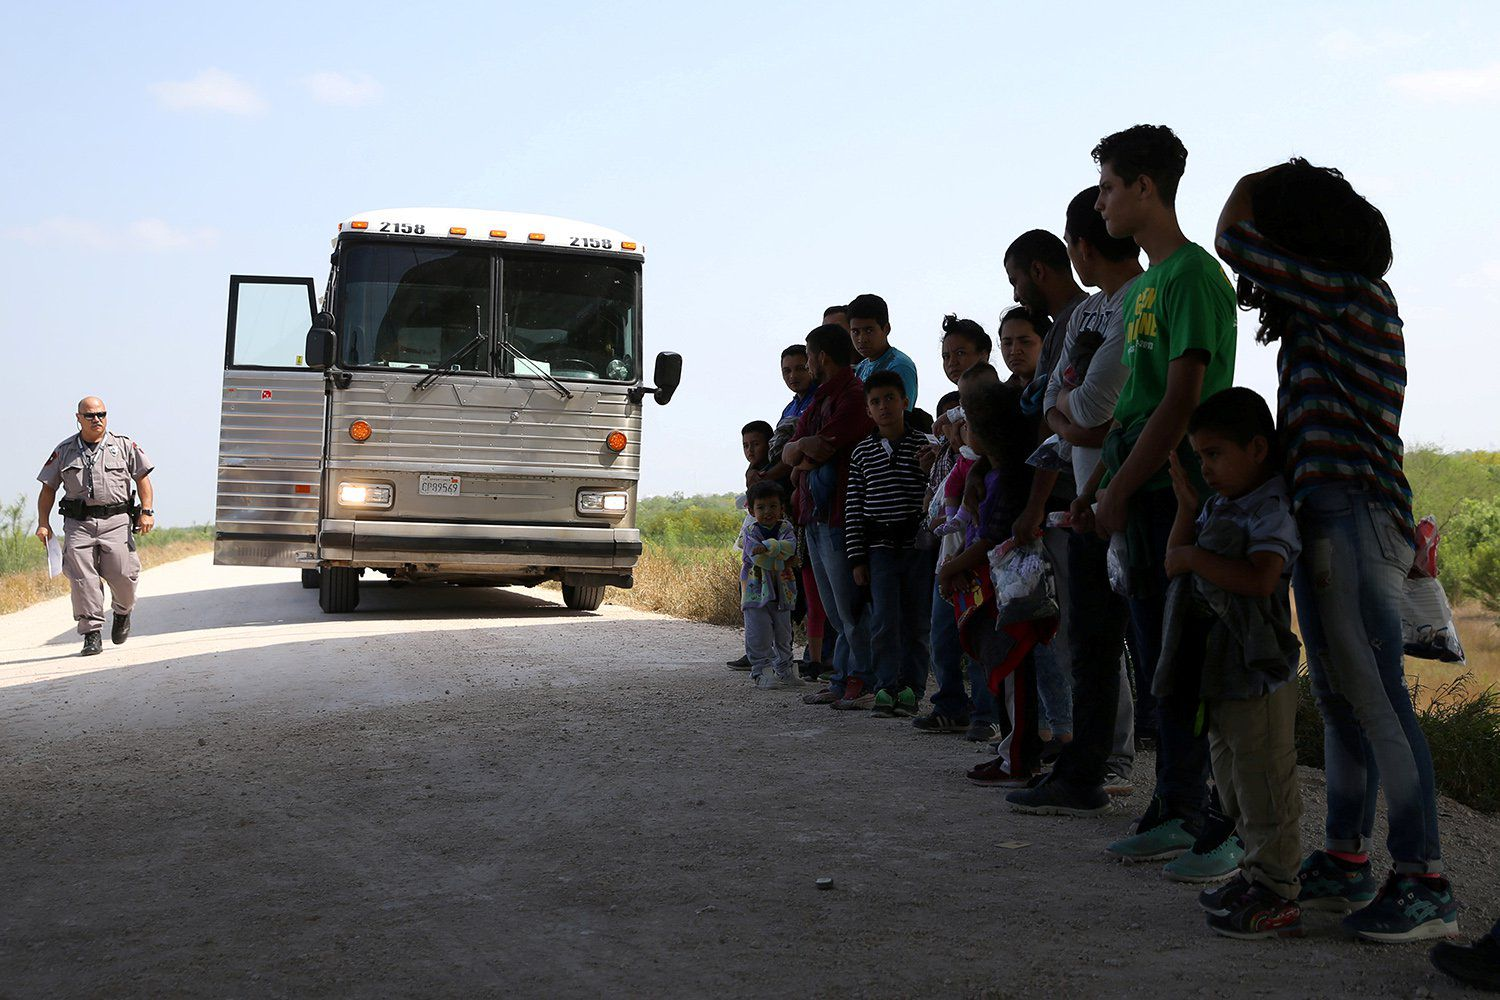 Immigrants who turned themselves in to border patrol agents after illegally crossing the border from Mexico into the U.S. wait to be transported for processing in the Rio Grande Valley sector, near McAllen, Texas on April 2, 2018.